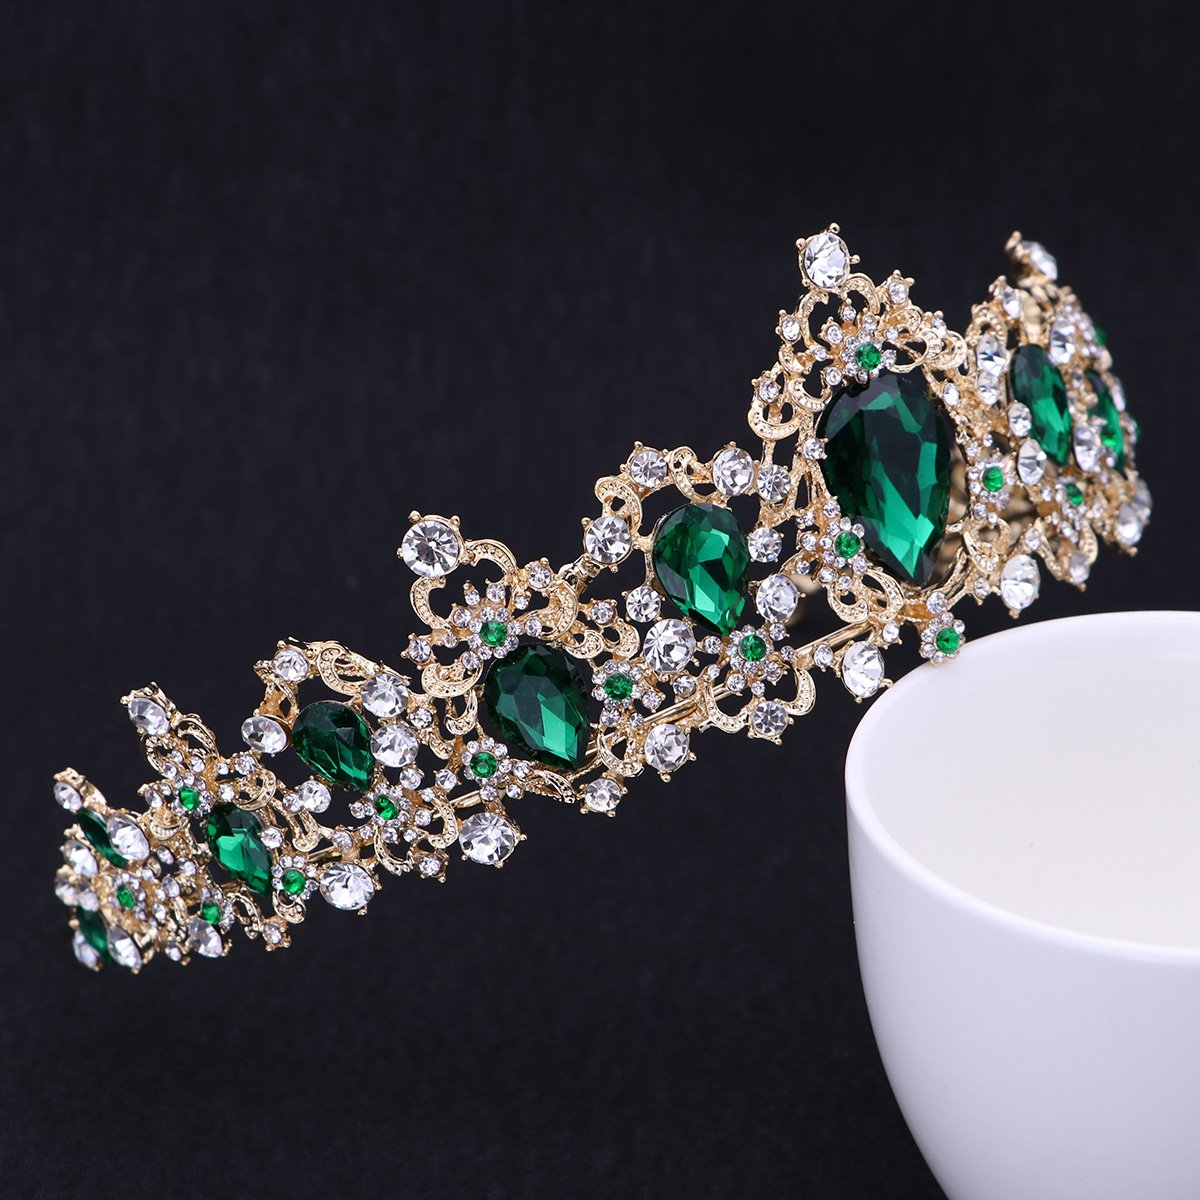 Royal Crystal Tiara Green Rhinestone Queen Tiara Wedding Crown Princess Hair Accessories for Women (Emerald Color)